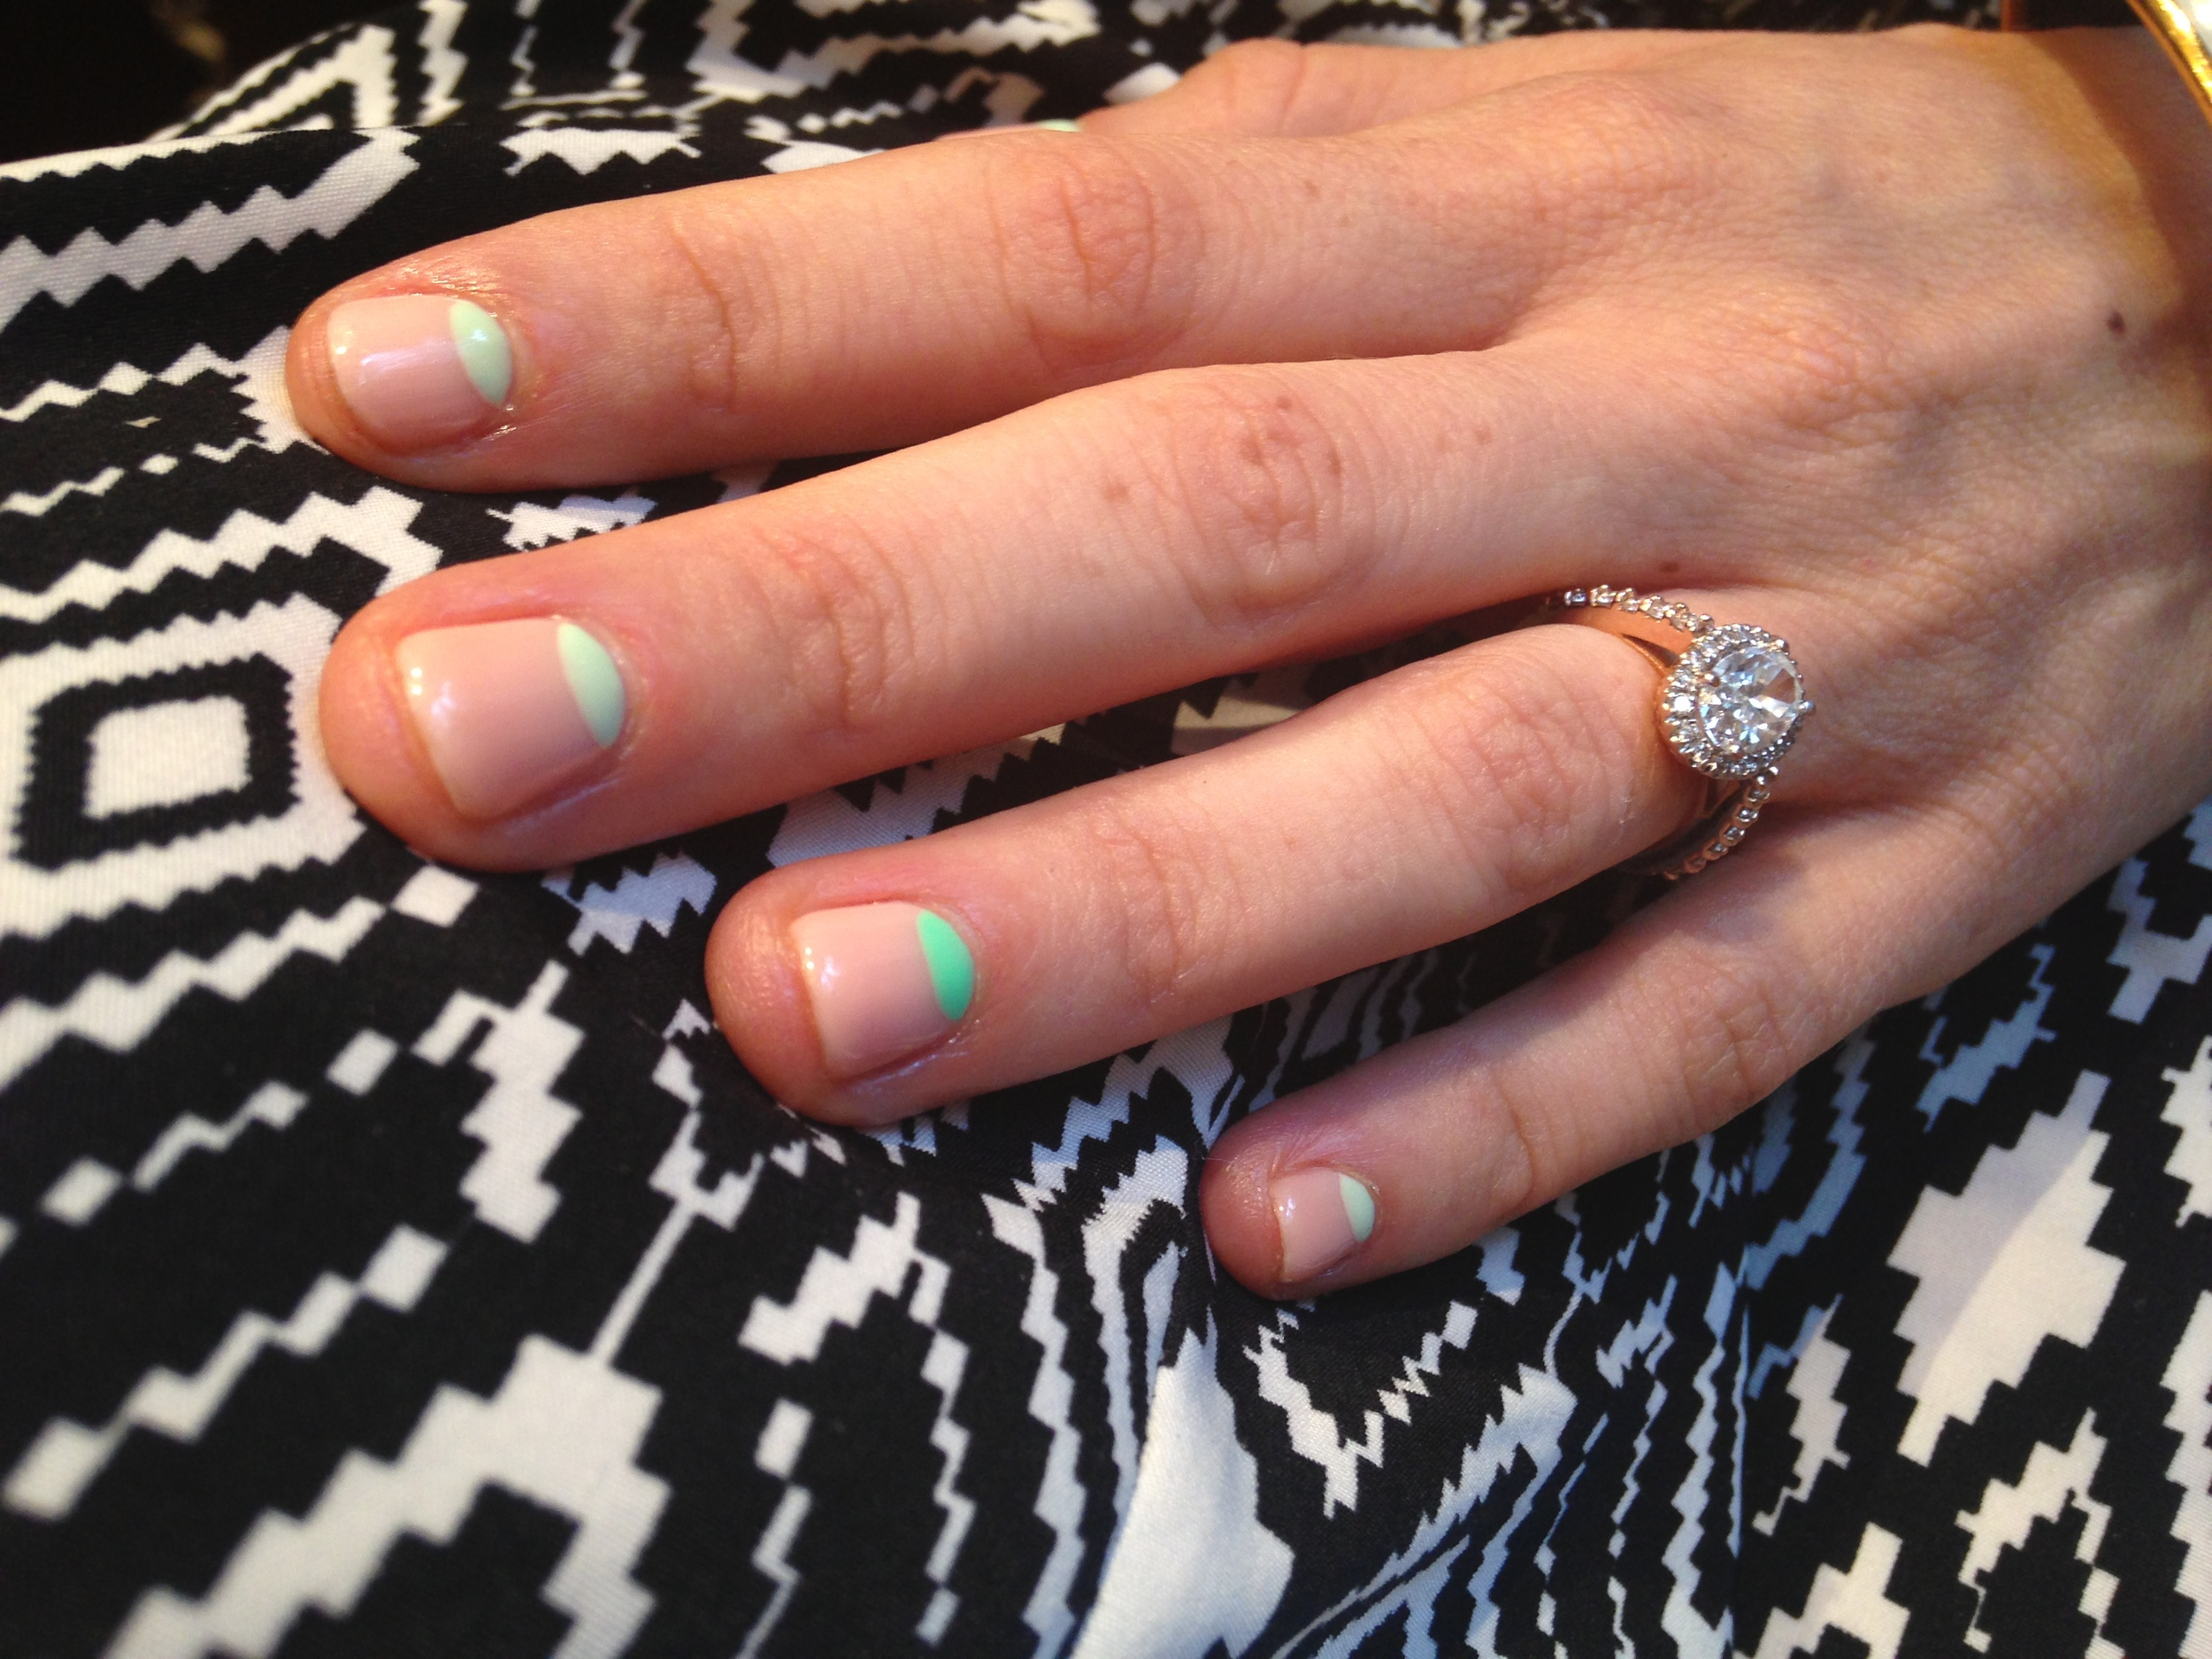 7ca9843be8 What do you think of my green half moon mani? It was definitely a  conversation starter! Since the new DKNY Be Delicious ad just came out  (behind the scenes ...